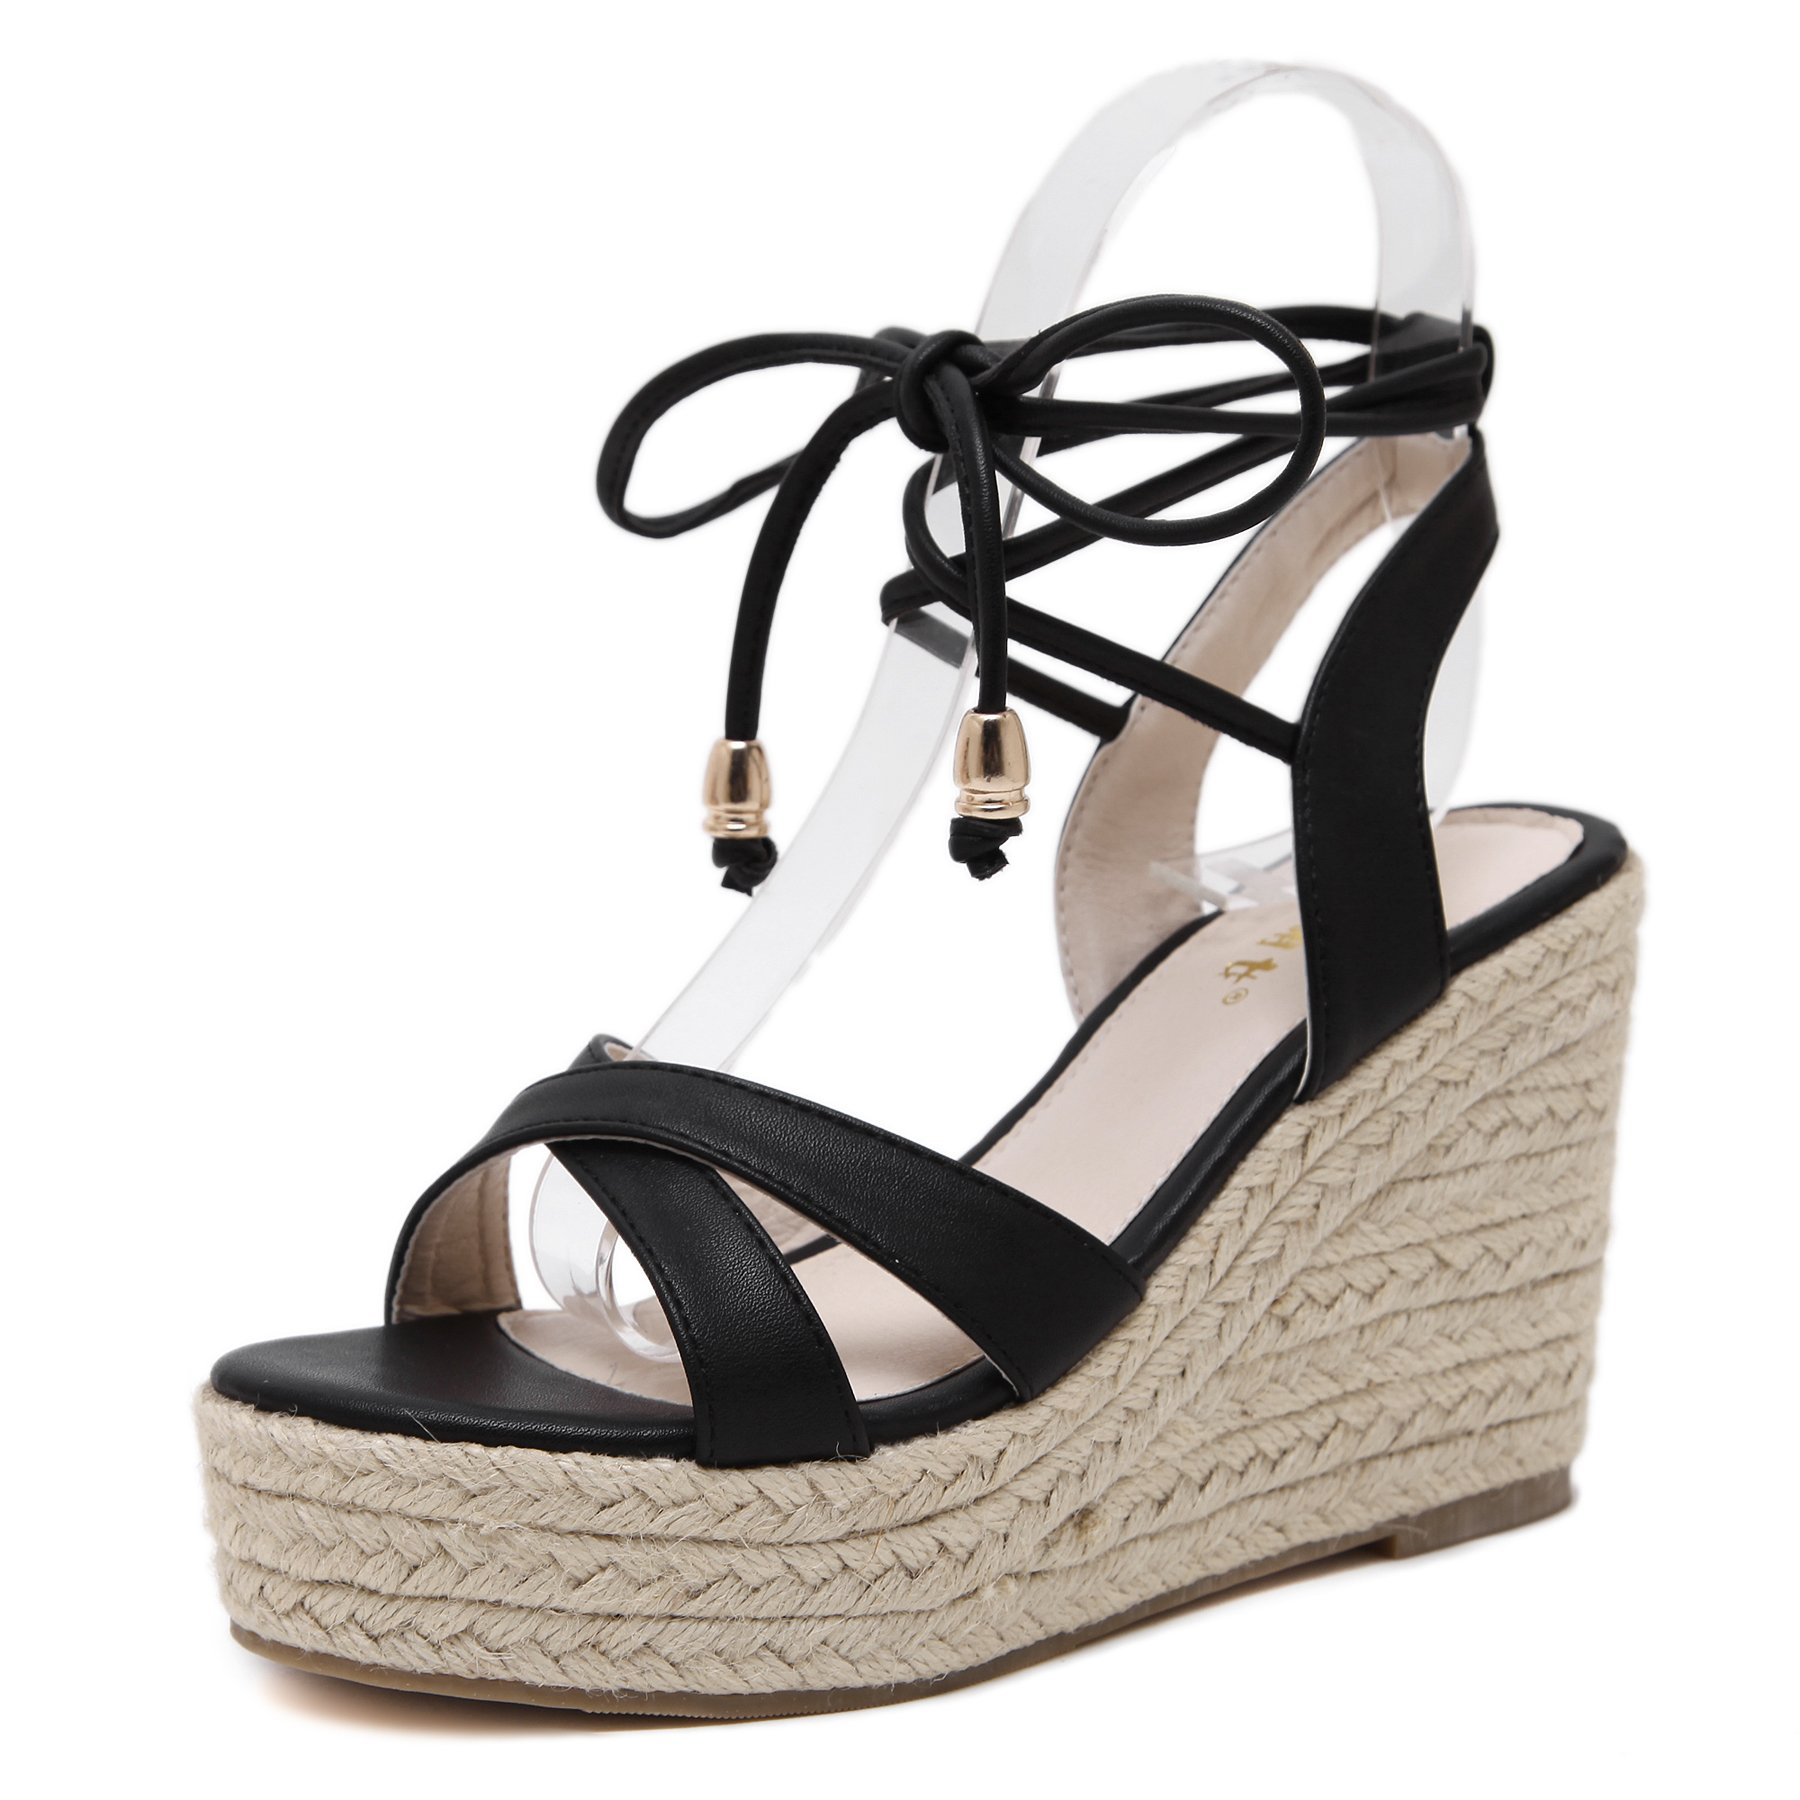 MAKEGSI Womens Jute-Rope Middle Wedge Heel Summer Shoes Flip Sandals Lace up (7.5, Black)